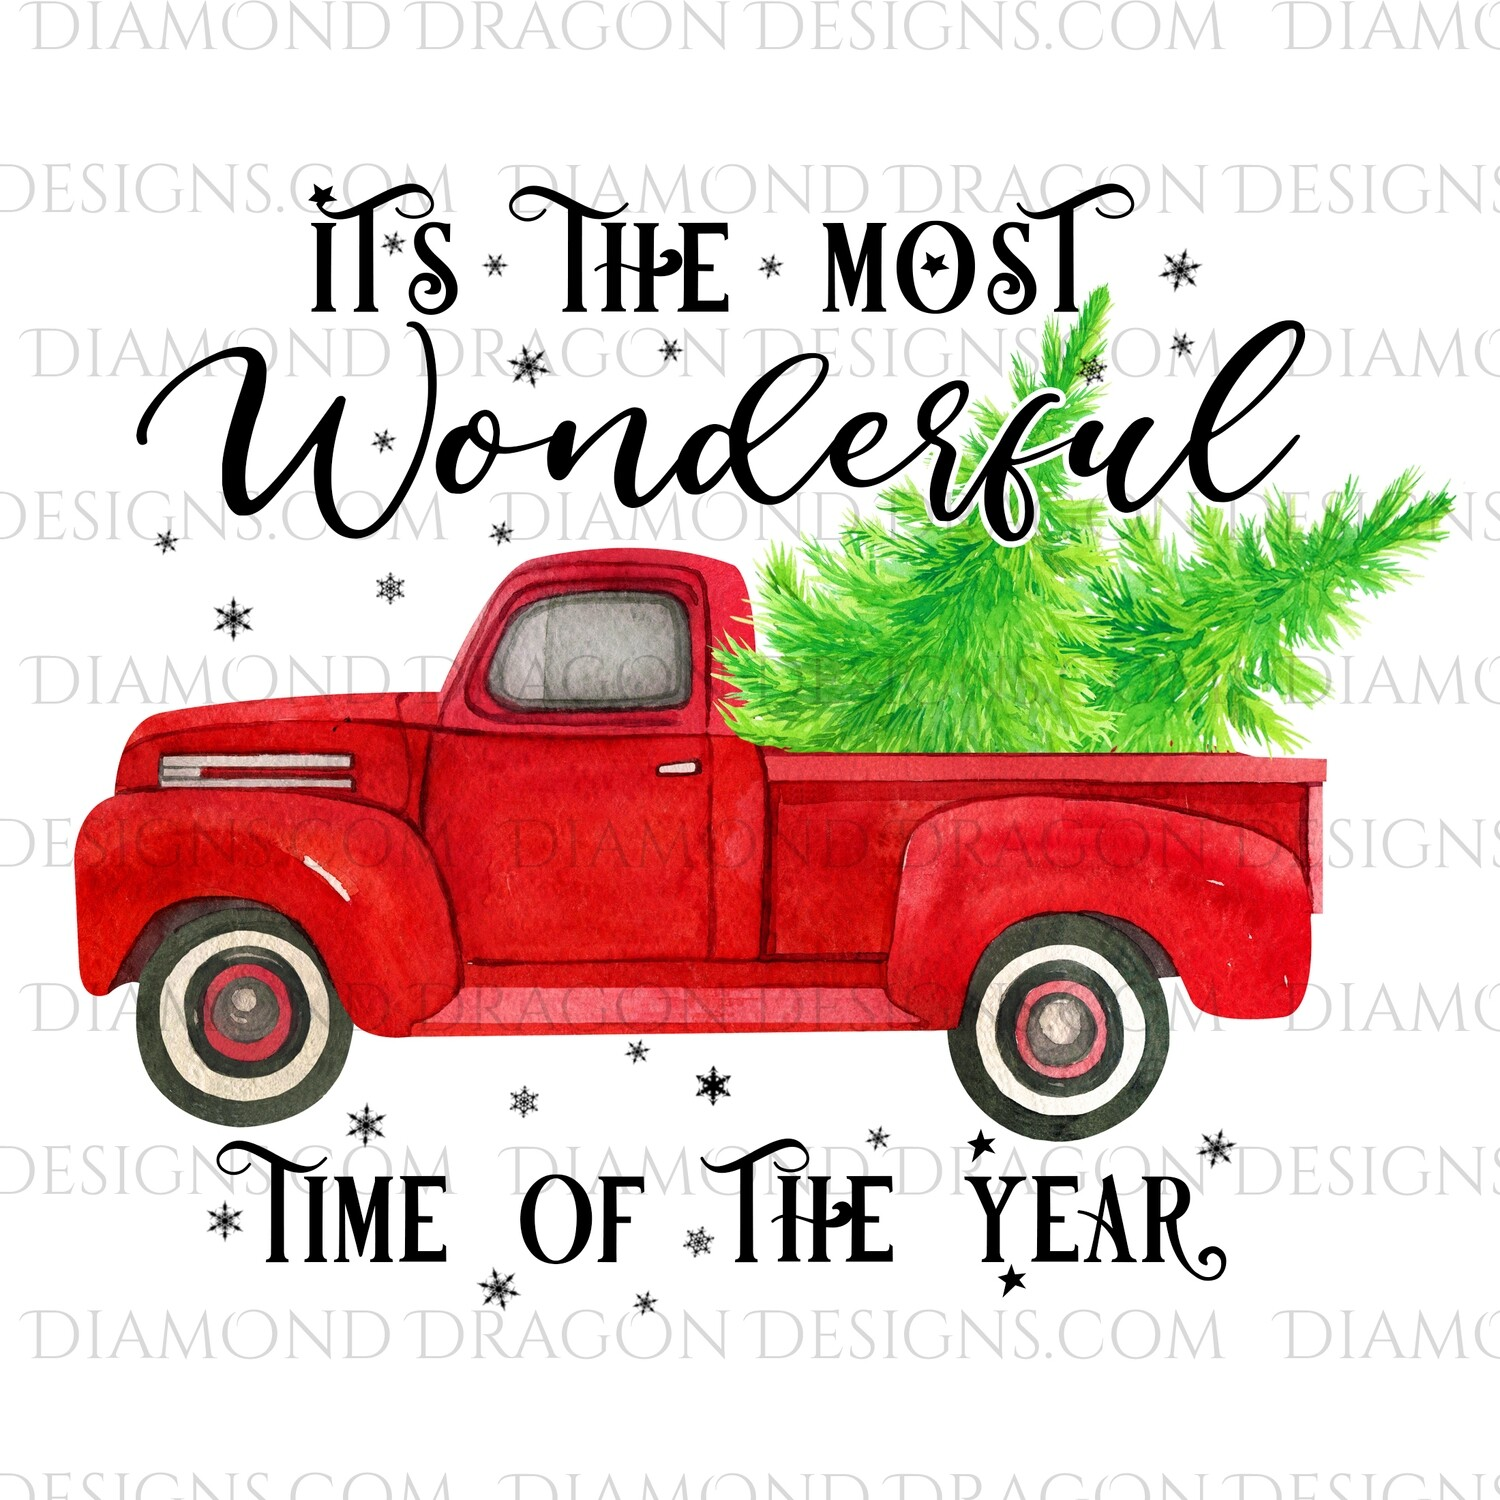 Christmas - Red Truck, Christmas Tree, It's the most wonderful time, Red Vintage Truck, Digital Image